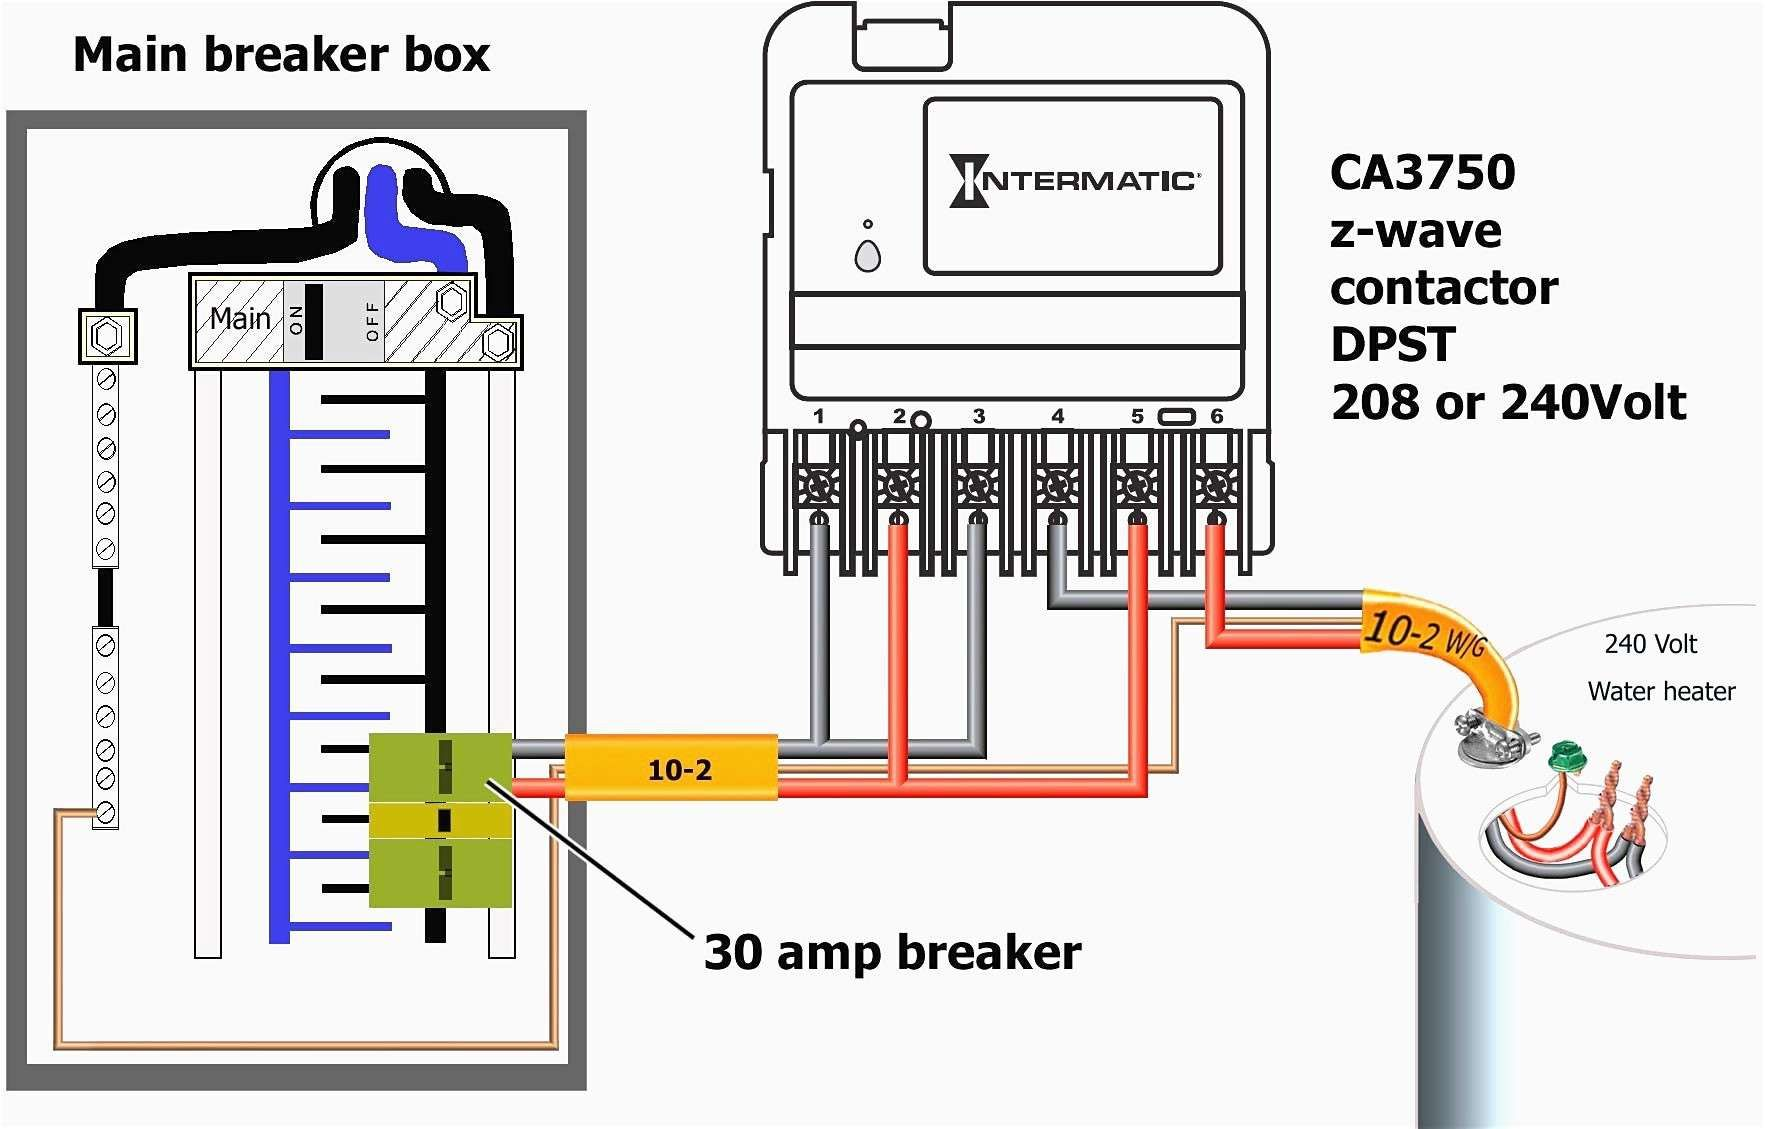 Wiring Diagram Outlets With Images Gfci Breaker Box 3 Way